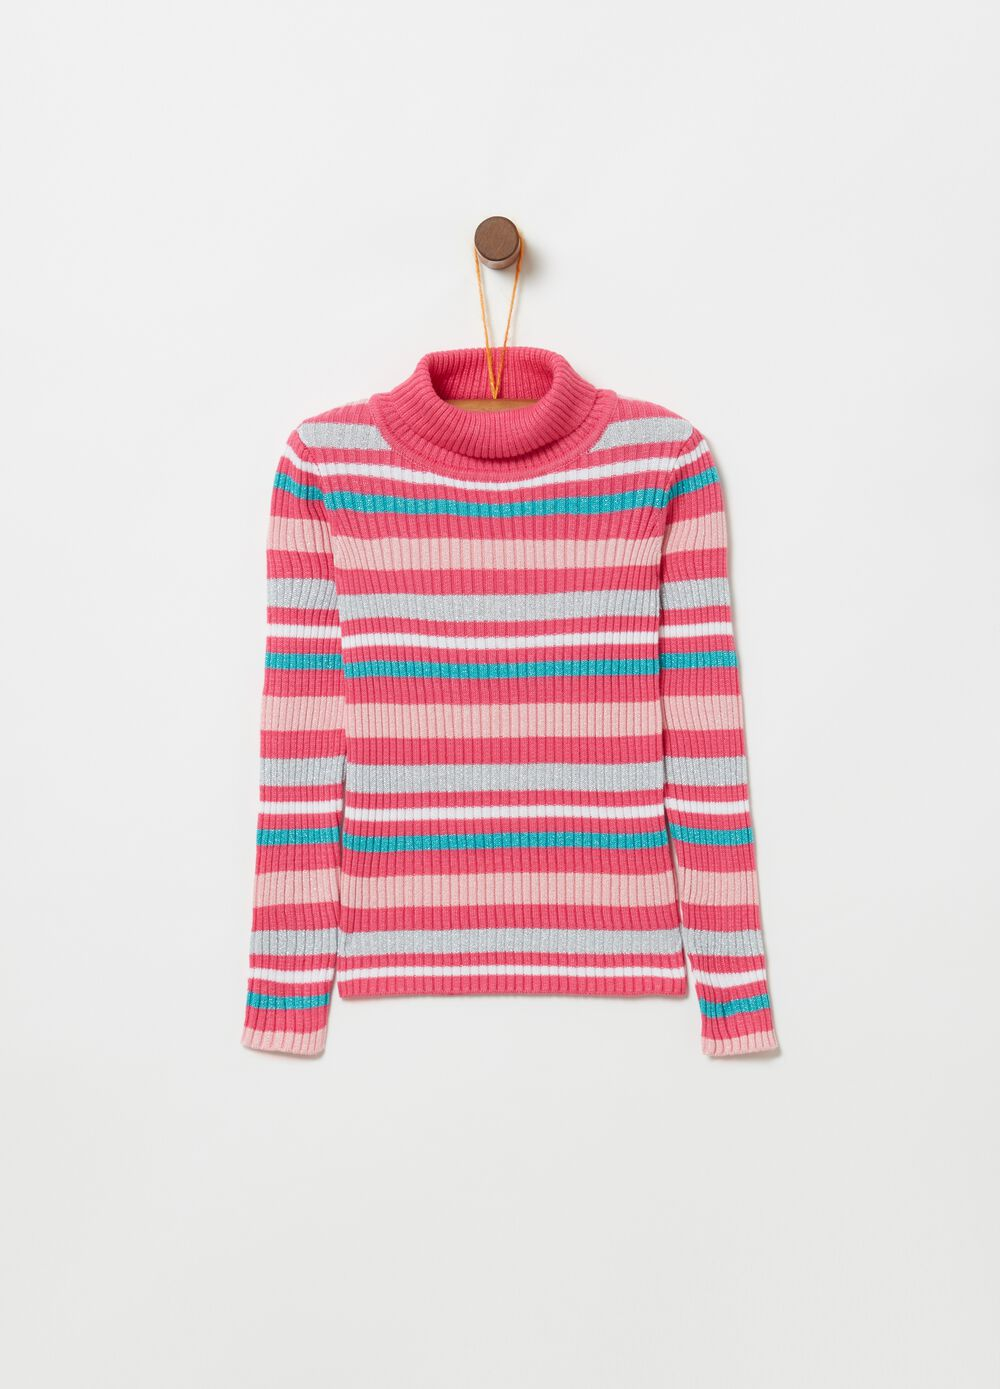 Top with striped high neck and lurex